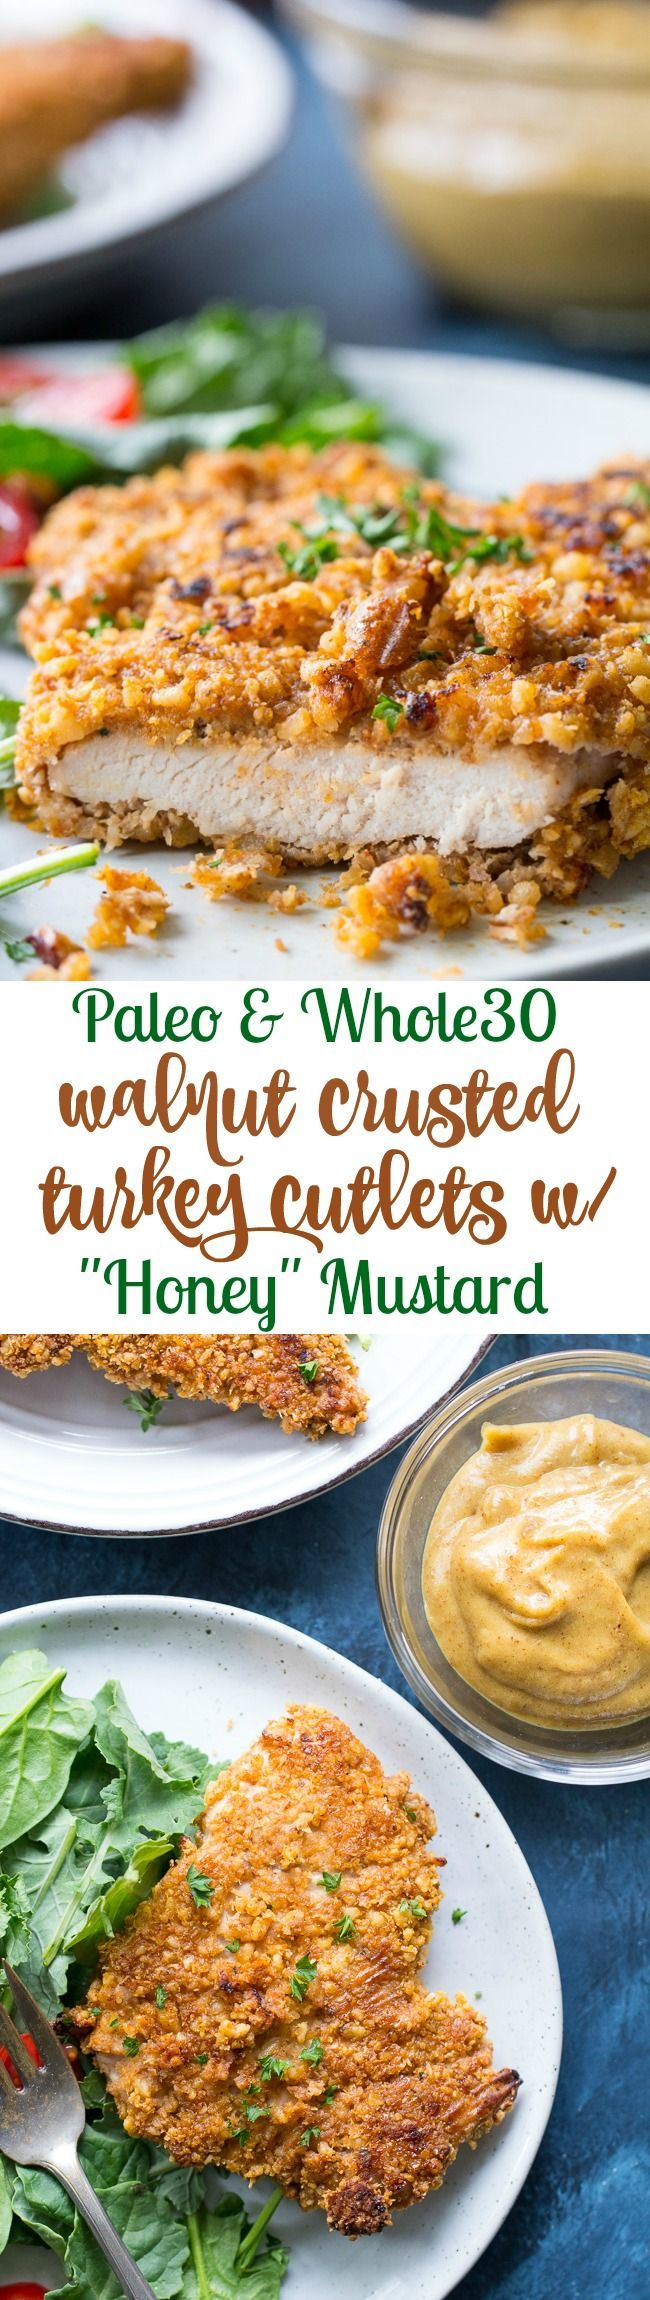 """These crispy walnut crusted turkey cutlets are baked with a date-sweetened """"honey"""" mustard sauce for a delicious and healthy Paleo and Whole30 friendly meal! Extra sauce for dipping makes these fun and kid-approved too.  (#AD) Made in partnership with @serveturkey for #TurkeyLovers Month."""